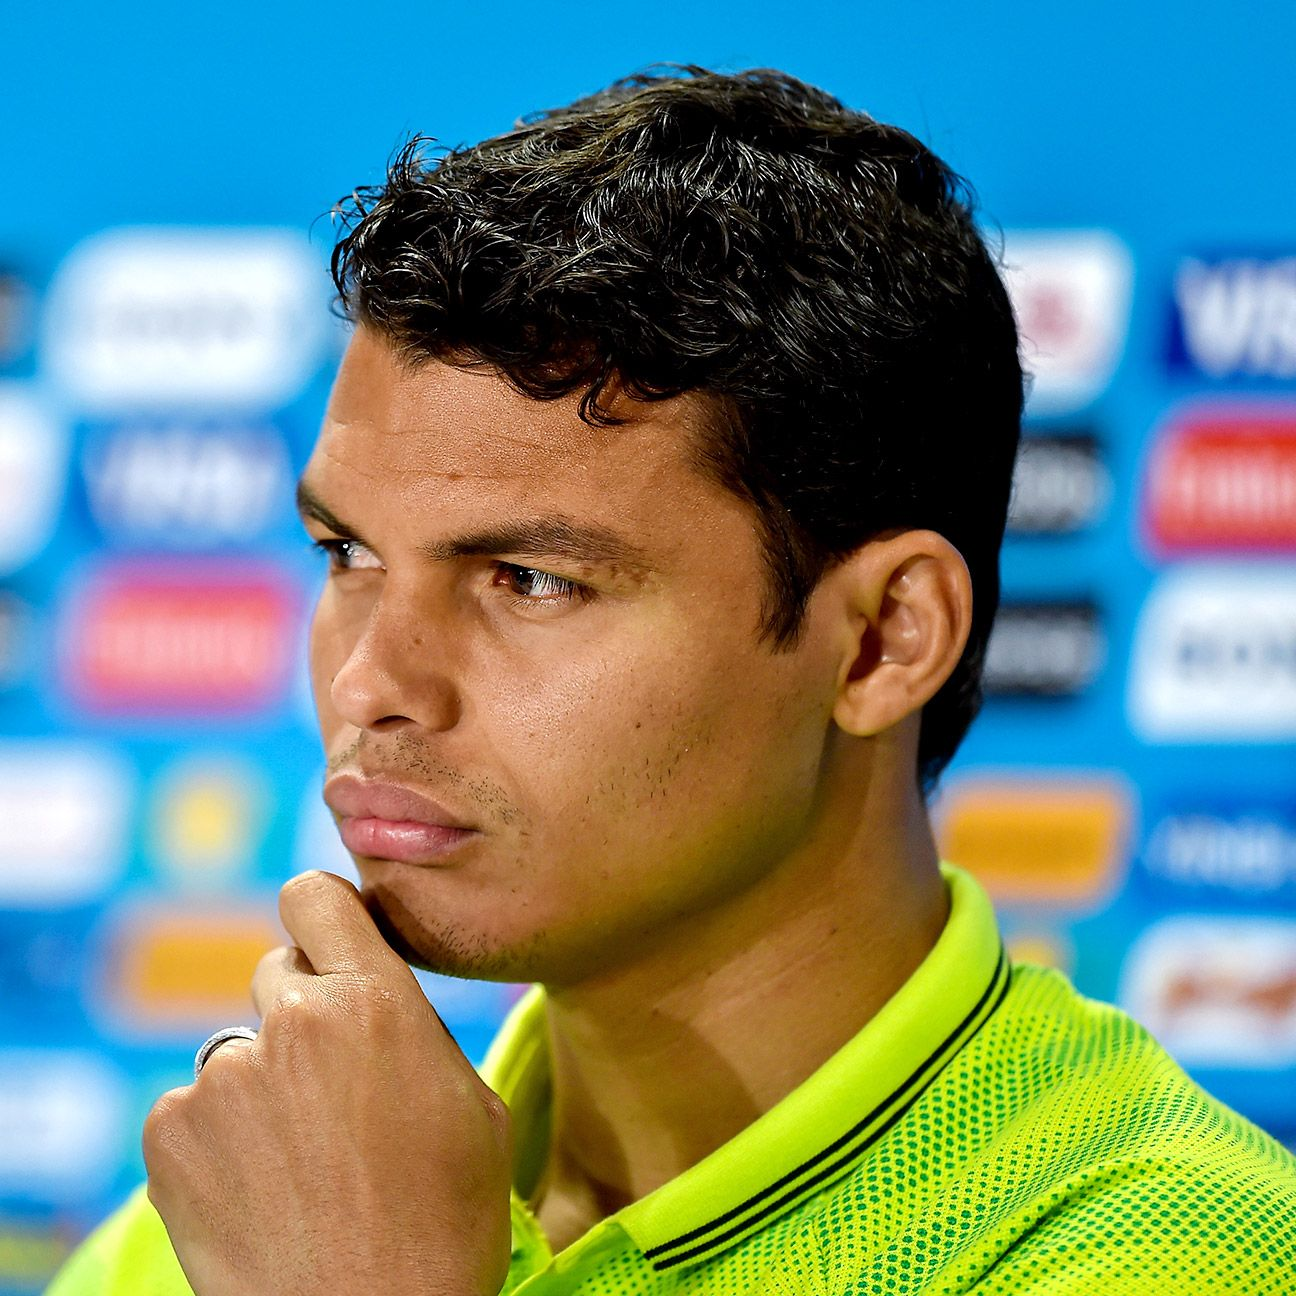 Thiago Silva's emotions have been running high, but he's ready to pair up with David Luiz and anchor the Seleção.